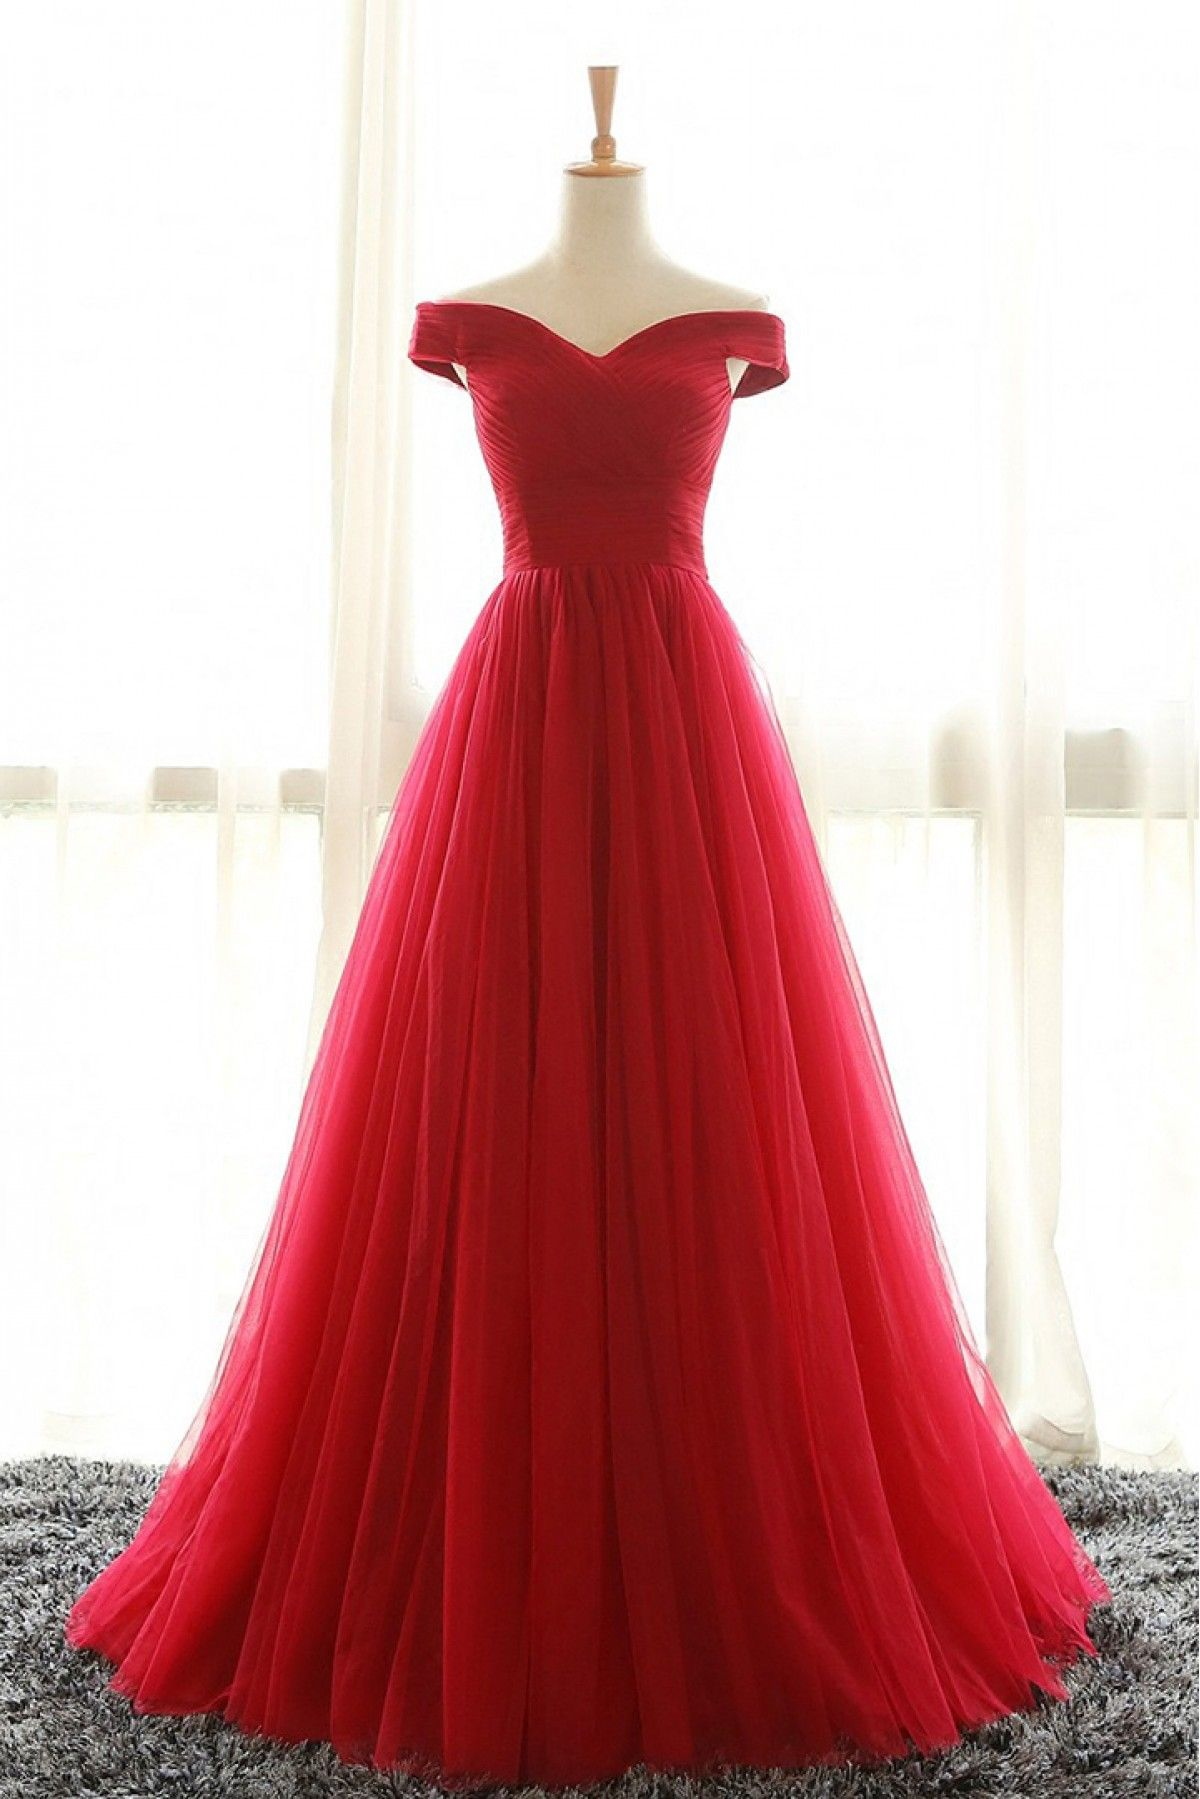 Youdesign cotton silk tulle gown in red colour size upto outfit